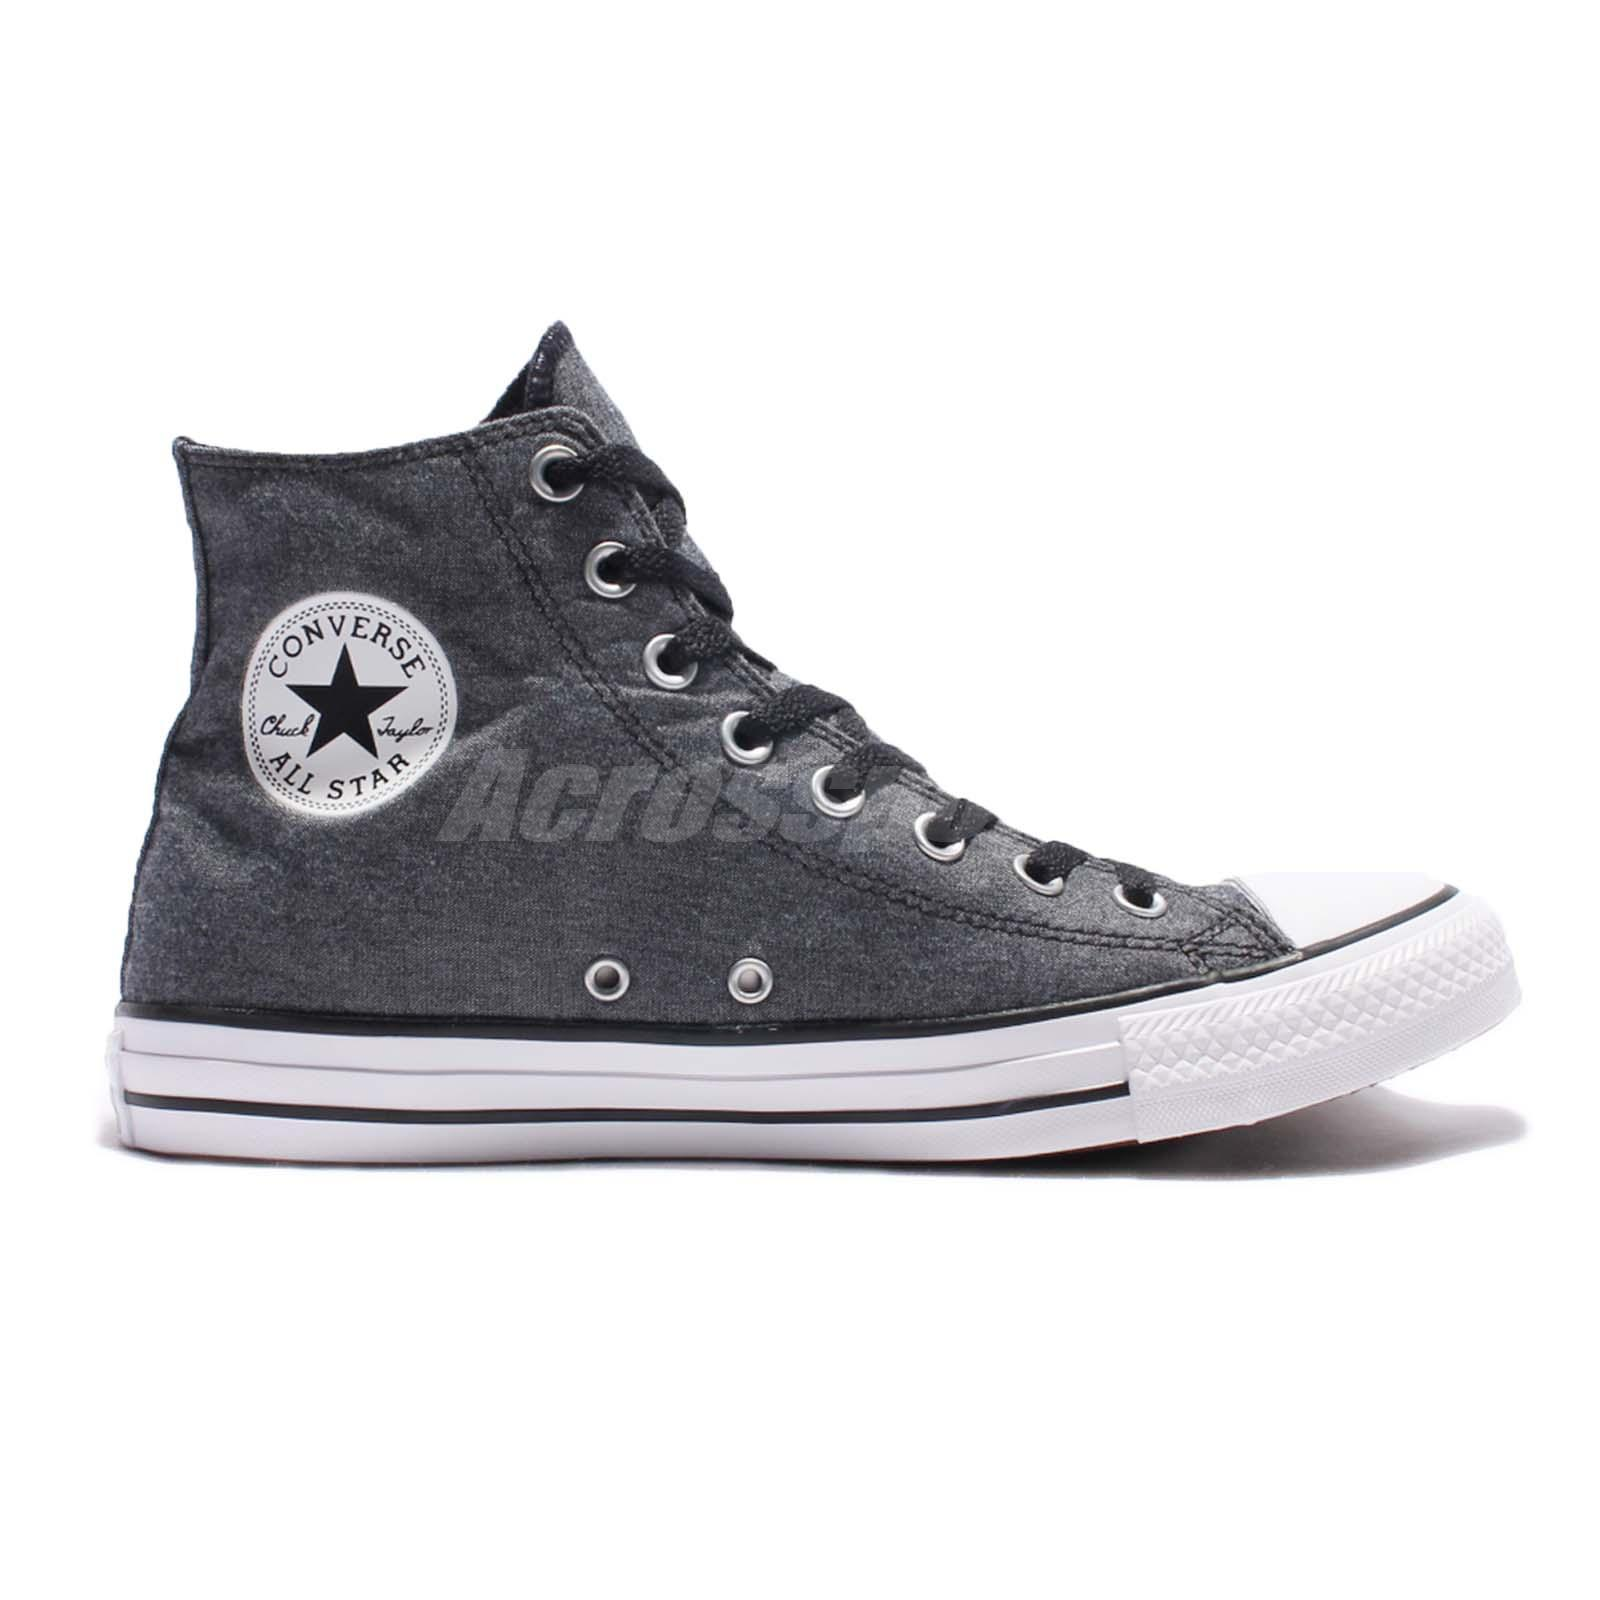 Grey 'Chuck Taylor All Star' converse 2015 new from china online perfect for sale quality free shipping outlet discount online K9XOG